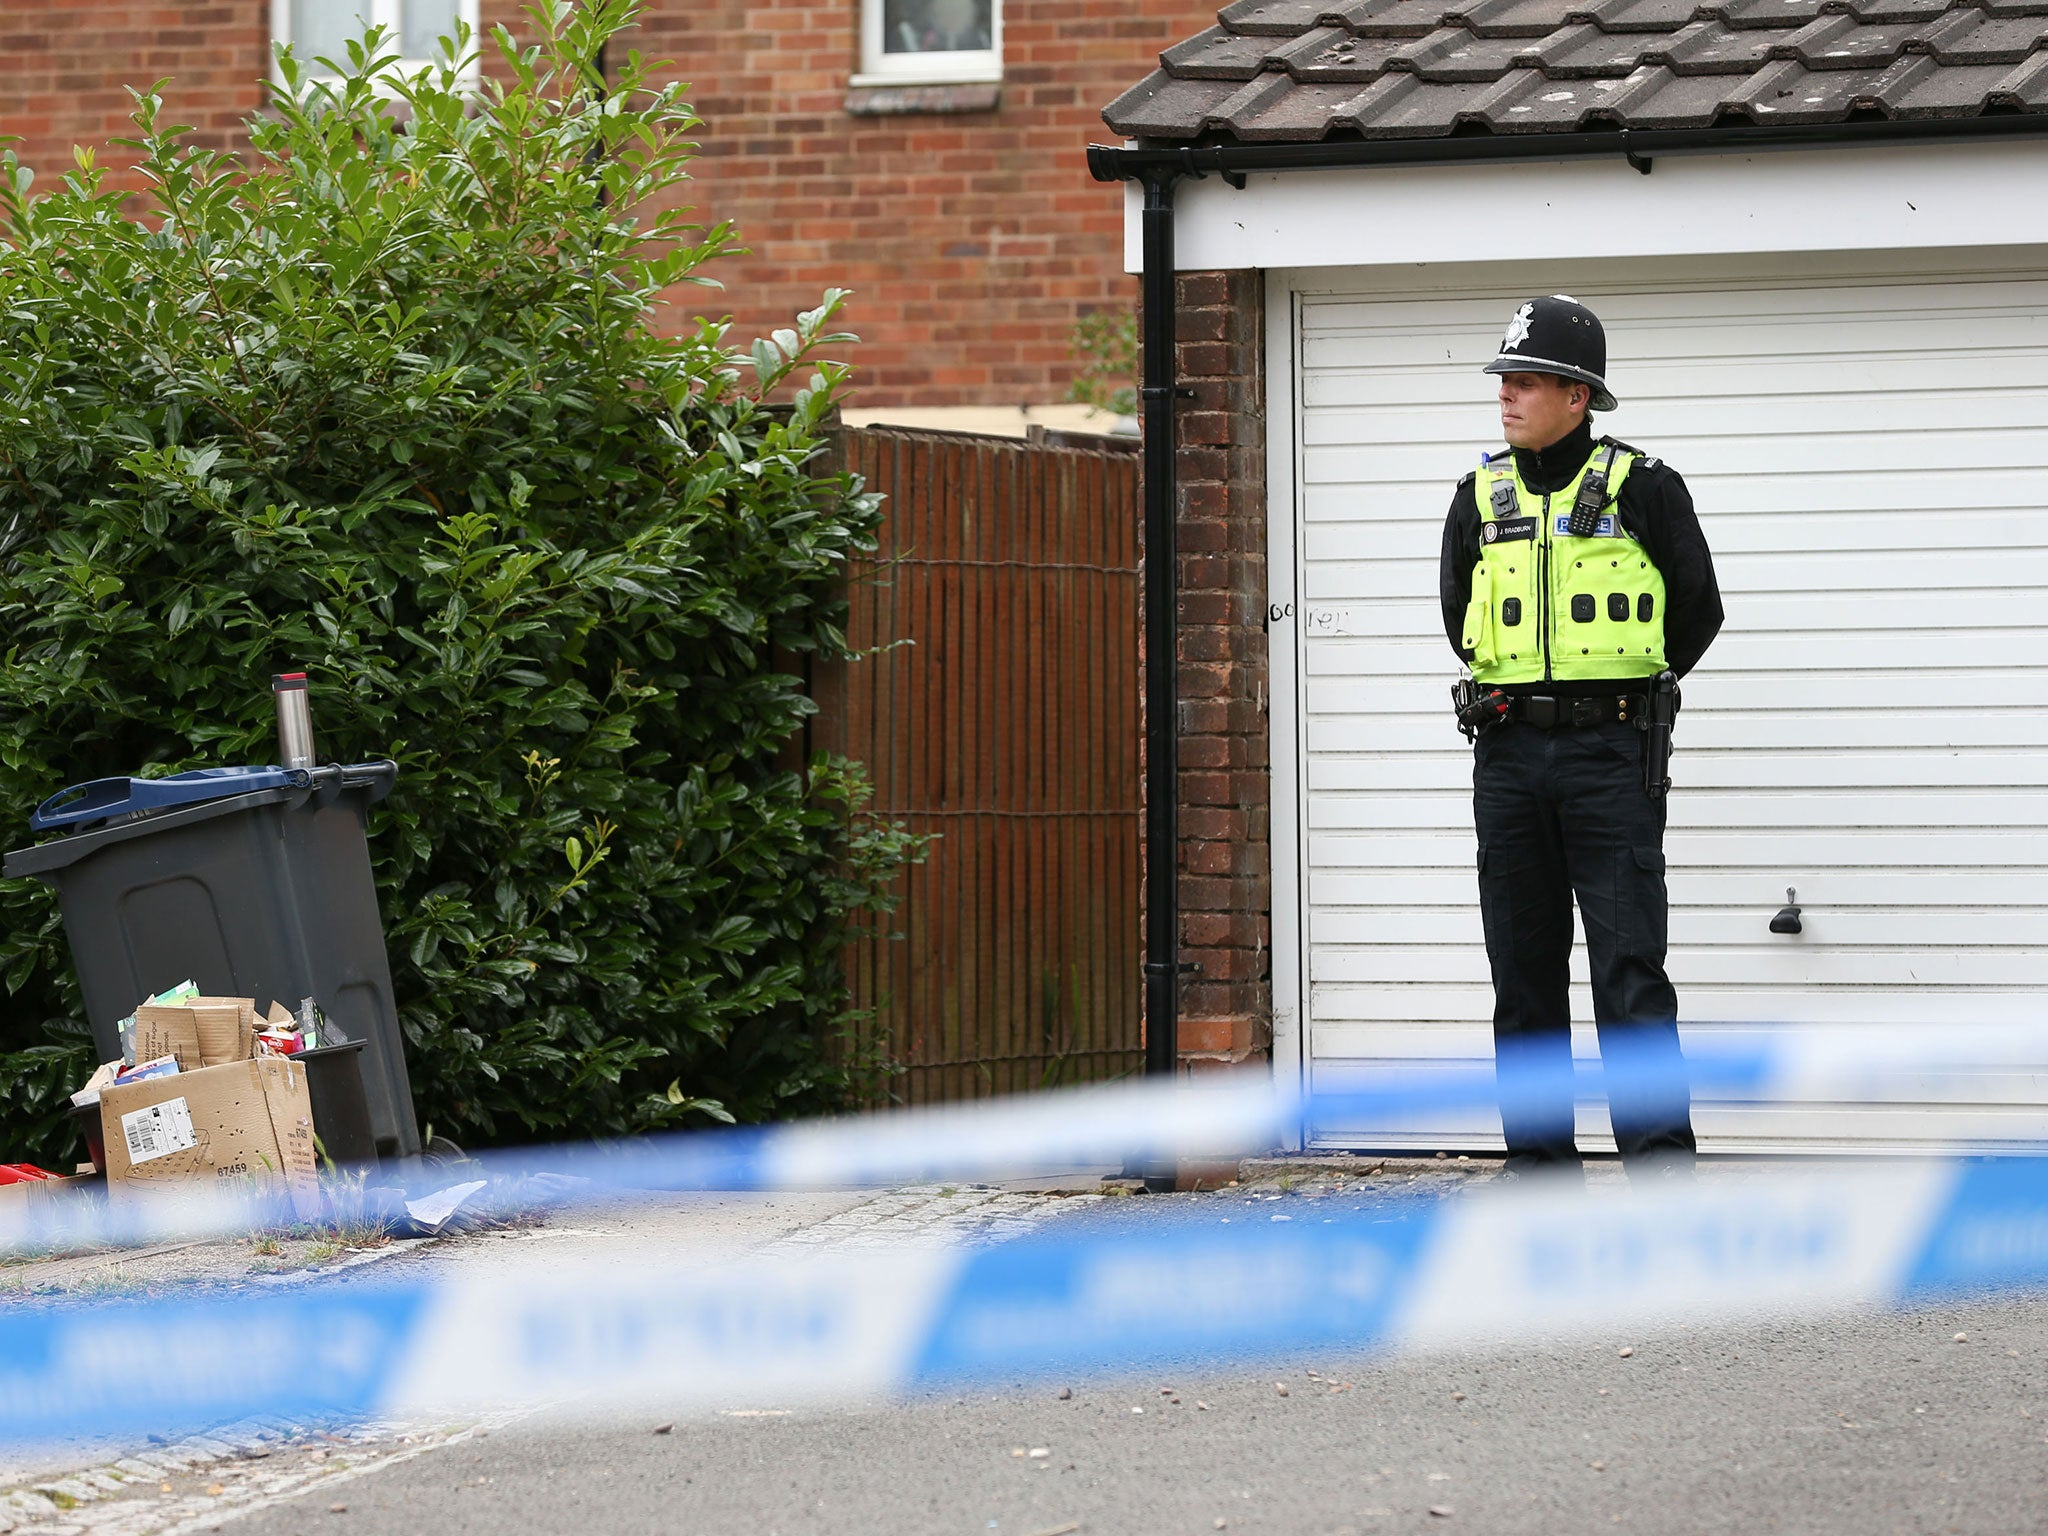 Sharif Cousins: IPCC investigation underway after police shoot charity founder in Birmingham | The Independentindependent_brand_ident_LOGOUntitled